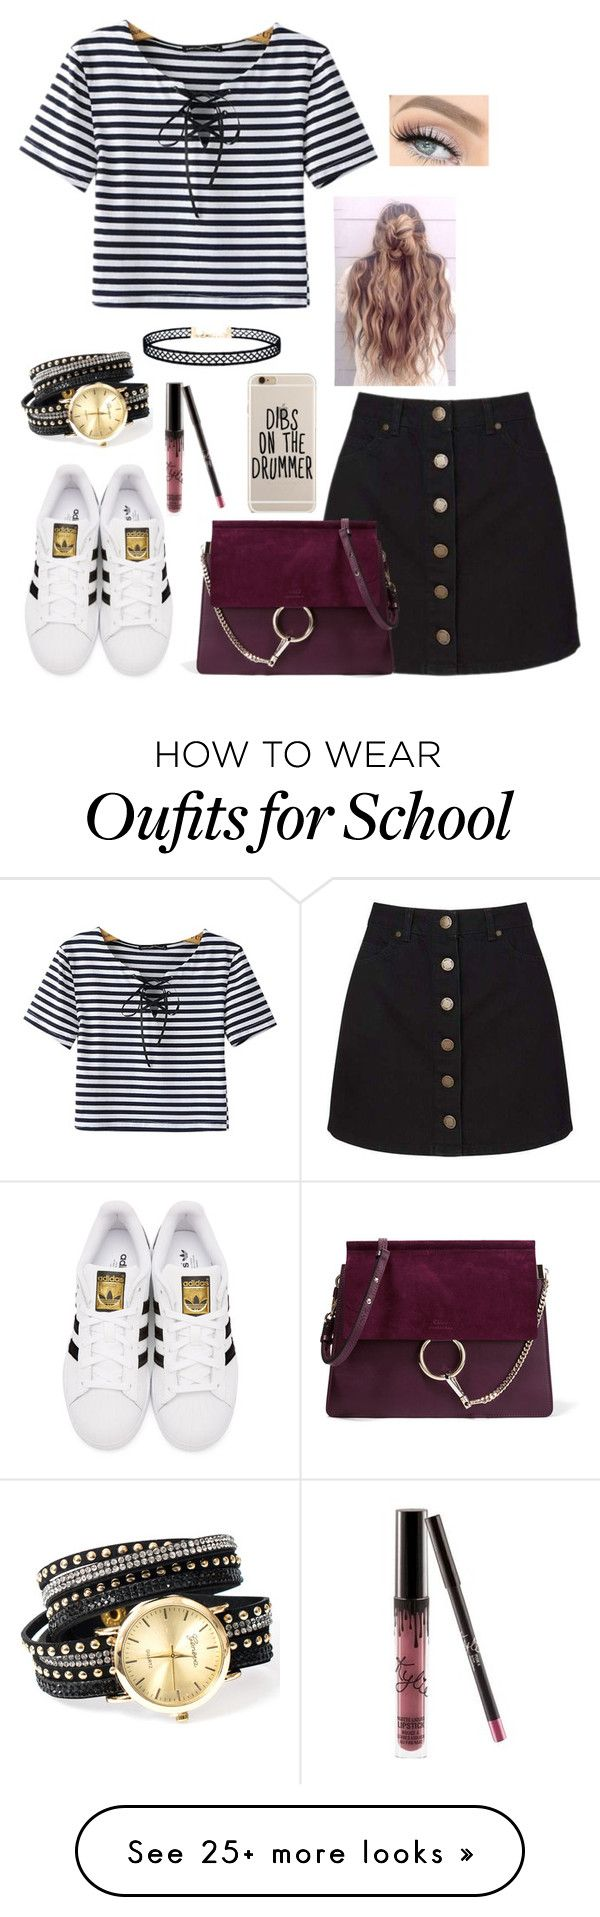 """High school"" by melody02craig on Polyvore featuring Miss Selfridge, adidas Originals, Chicnova Fashion, LULUS, Kylie Cosmetics and Chloé"